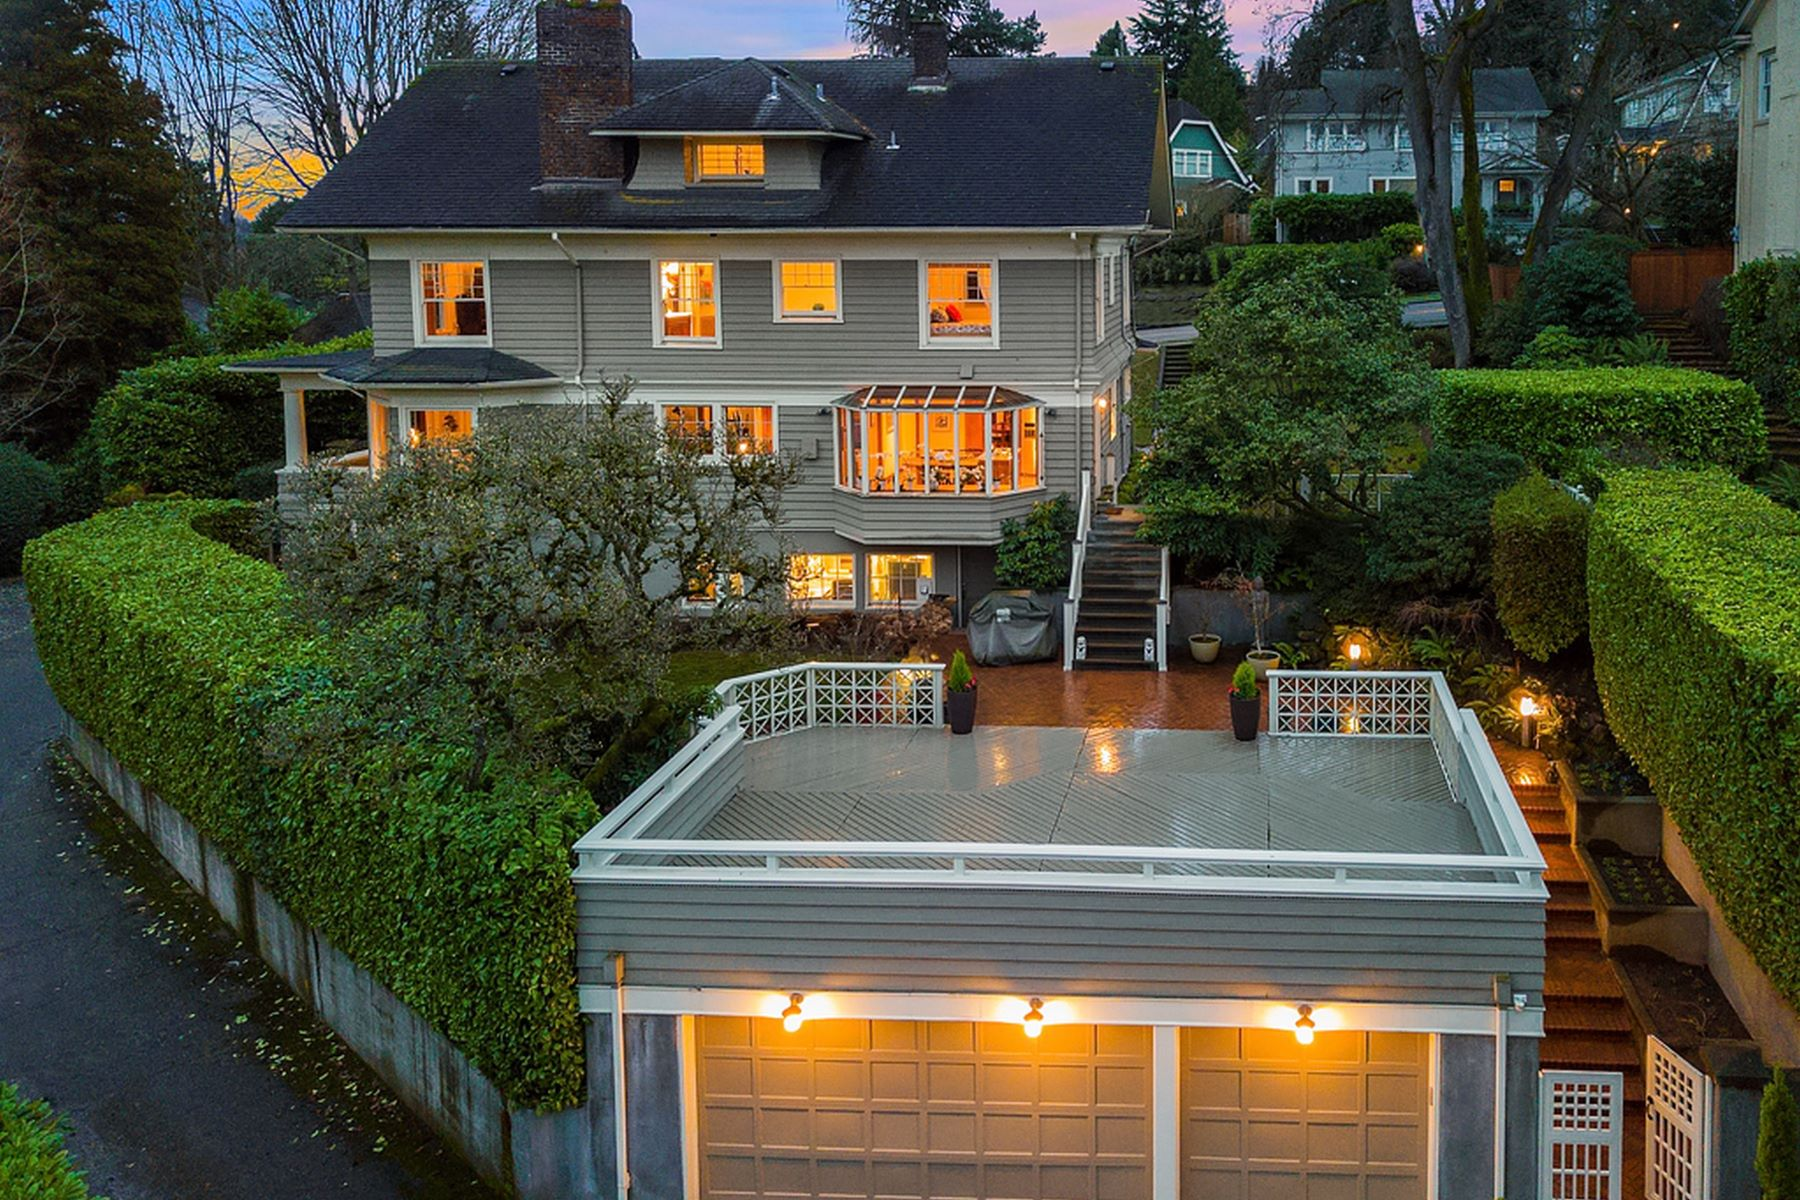 Additional photo for property listing at 2222 Crescent Dr, Seattle 2222 E Crescent Dr Seattle, Washington 98112 United States